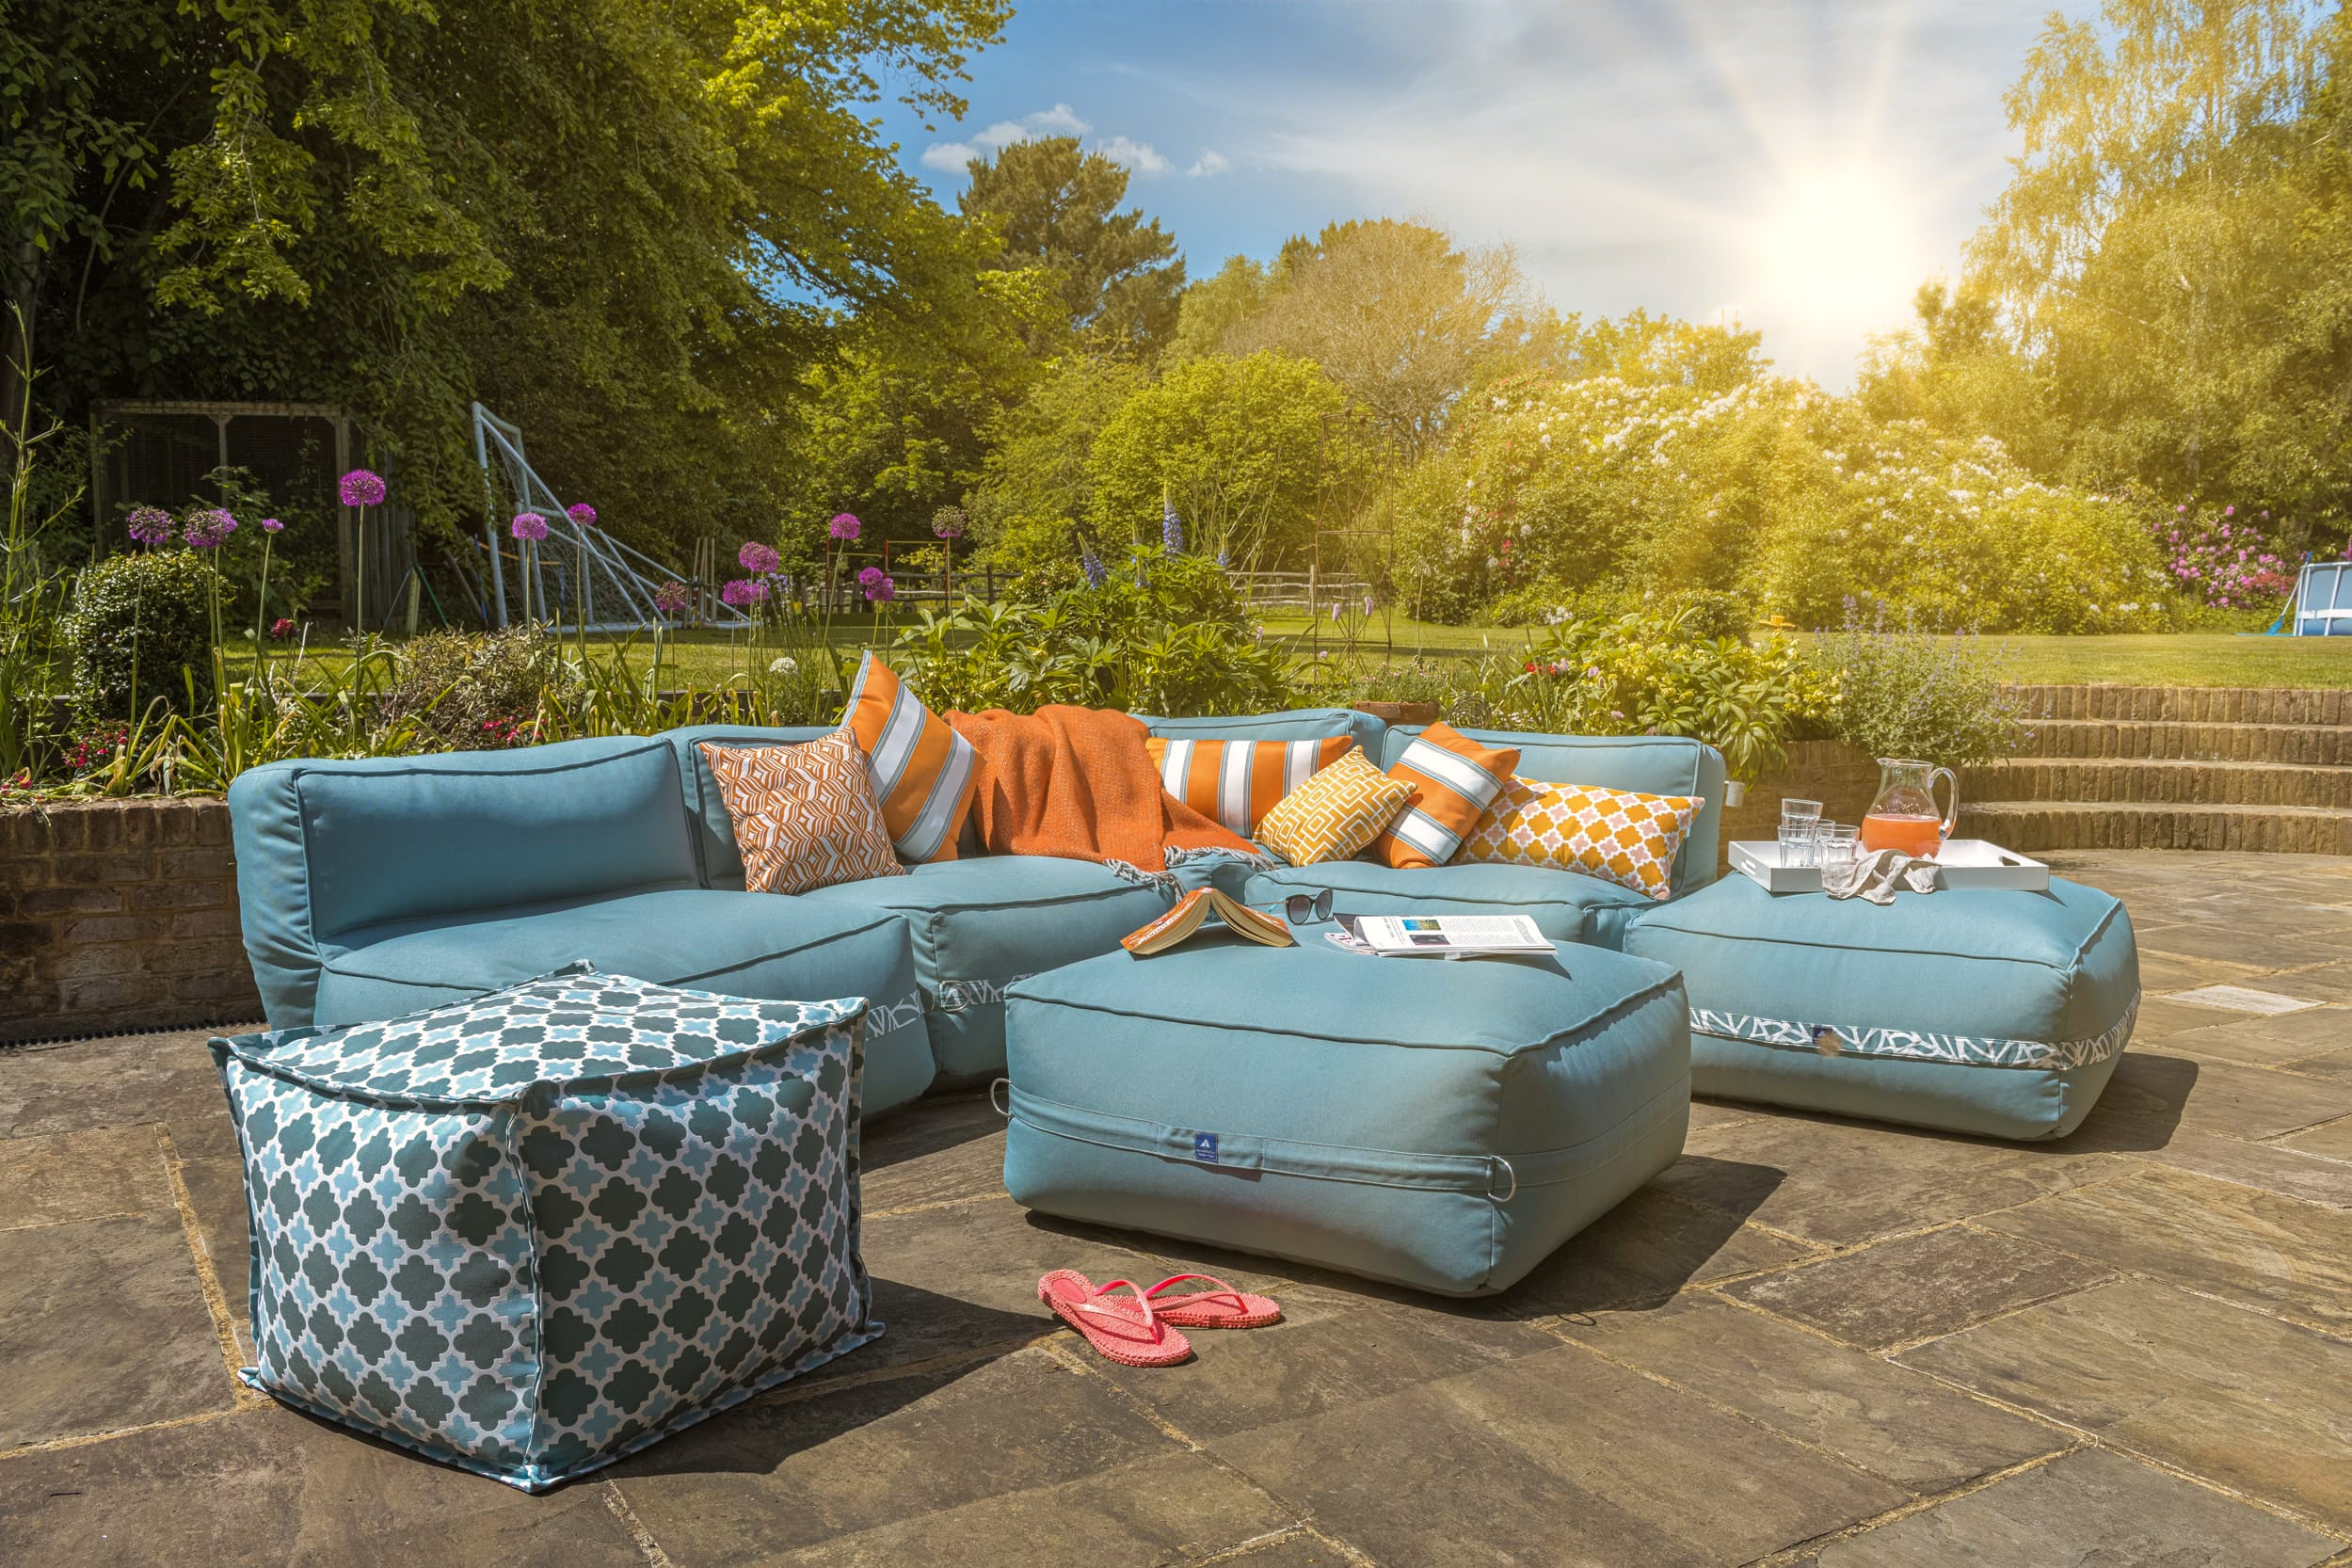 A garden sofa in ocean blue at a sunny BBQ party